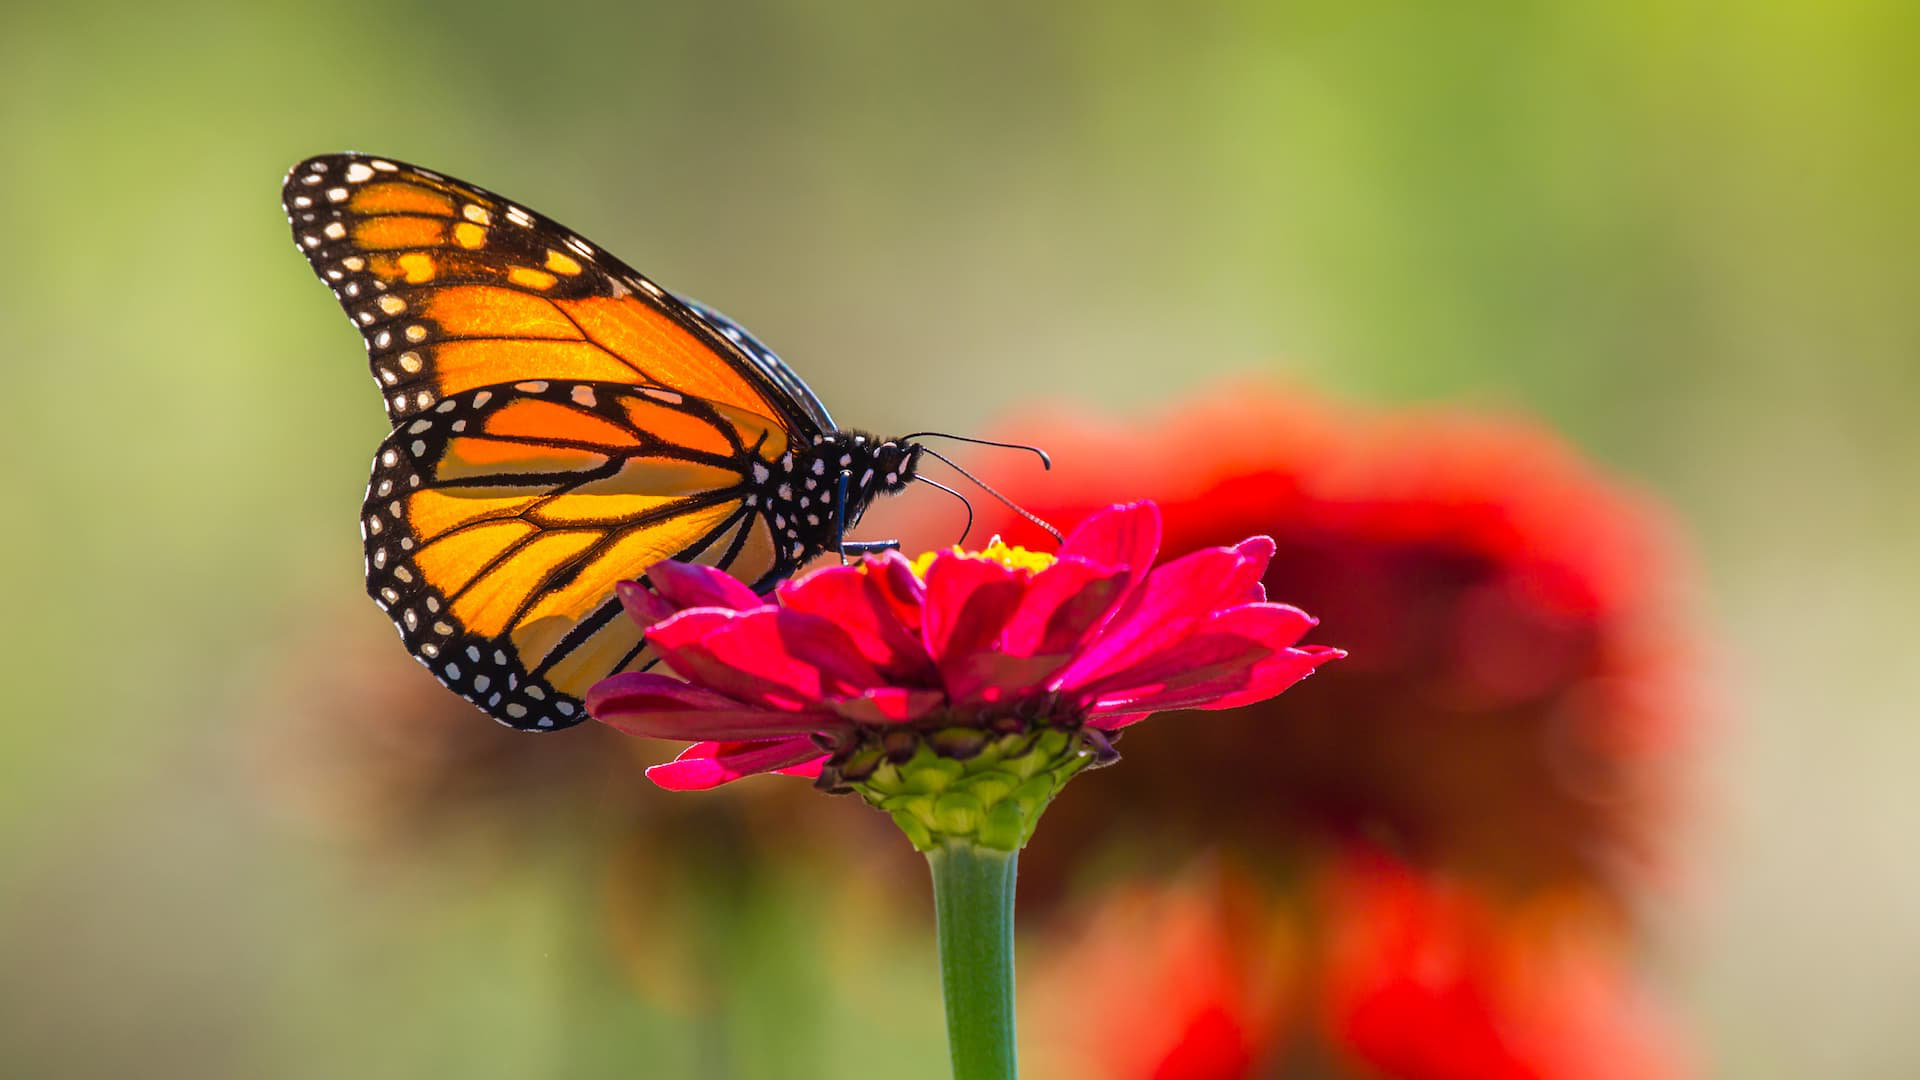 A butterfly alights on a flower during a SASS-sponsored gleaning trip. Photo by Mike Cohea.